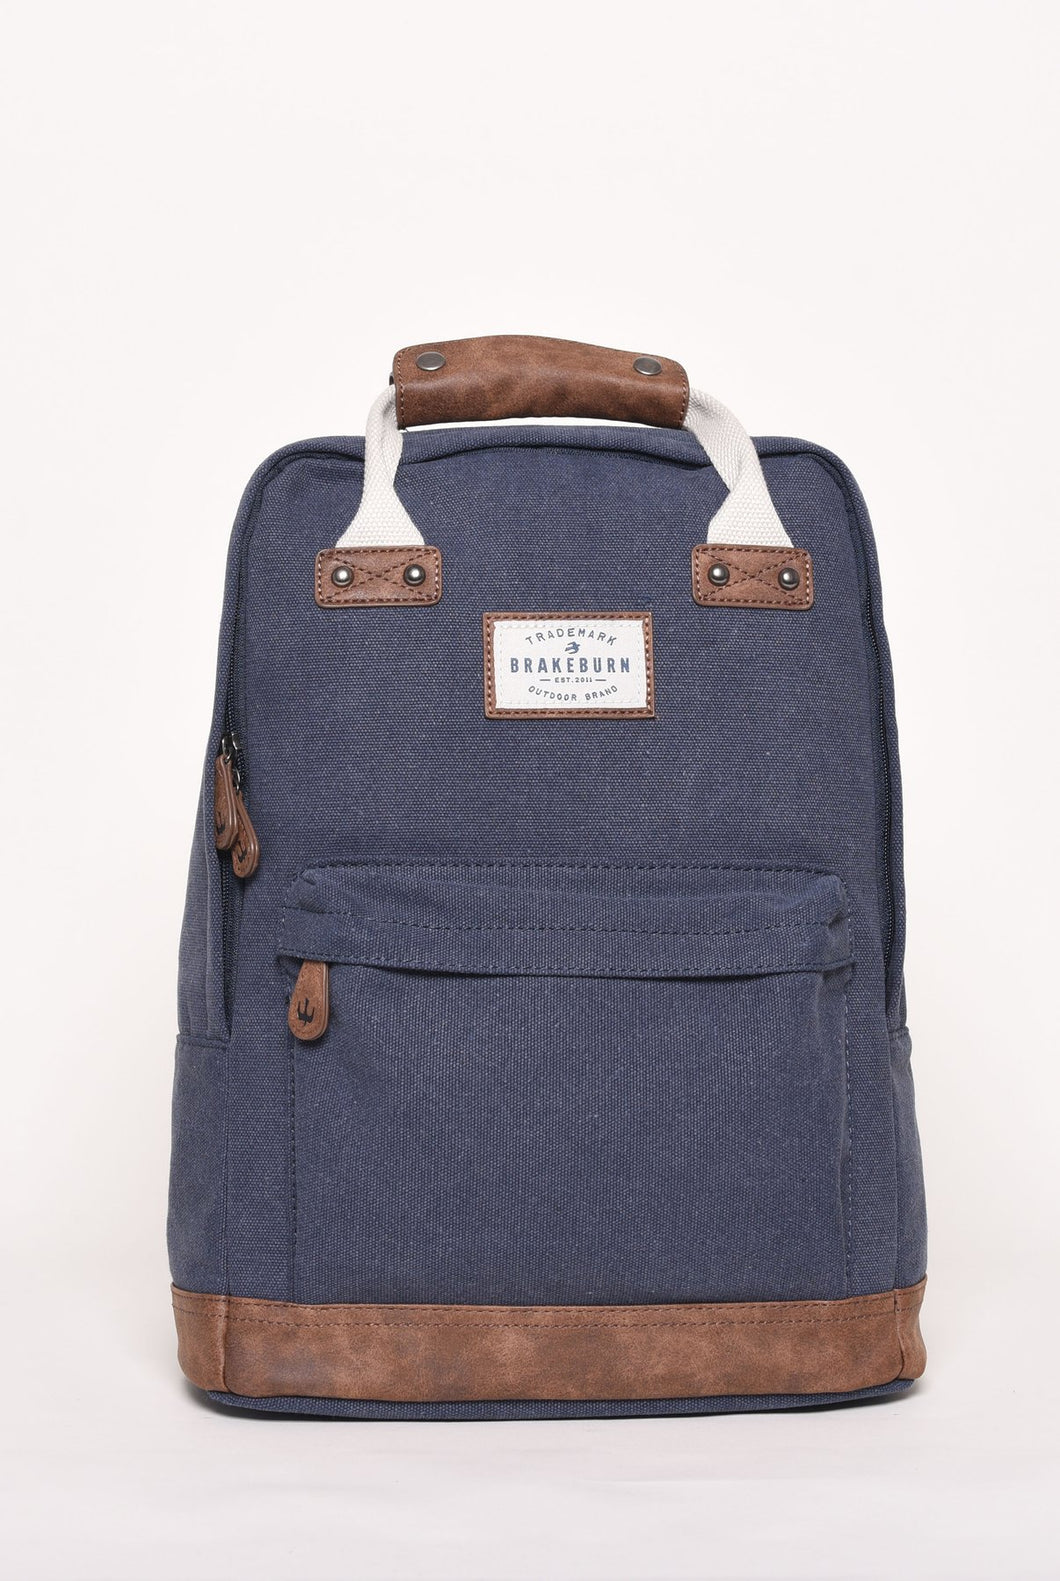 Brakeburn Canvas Backpack